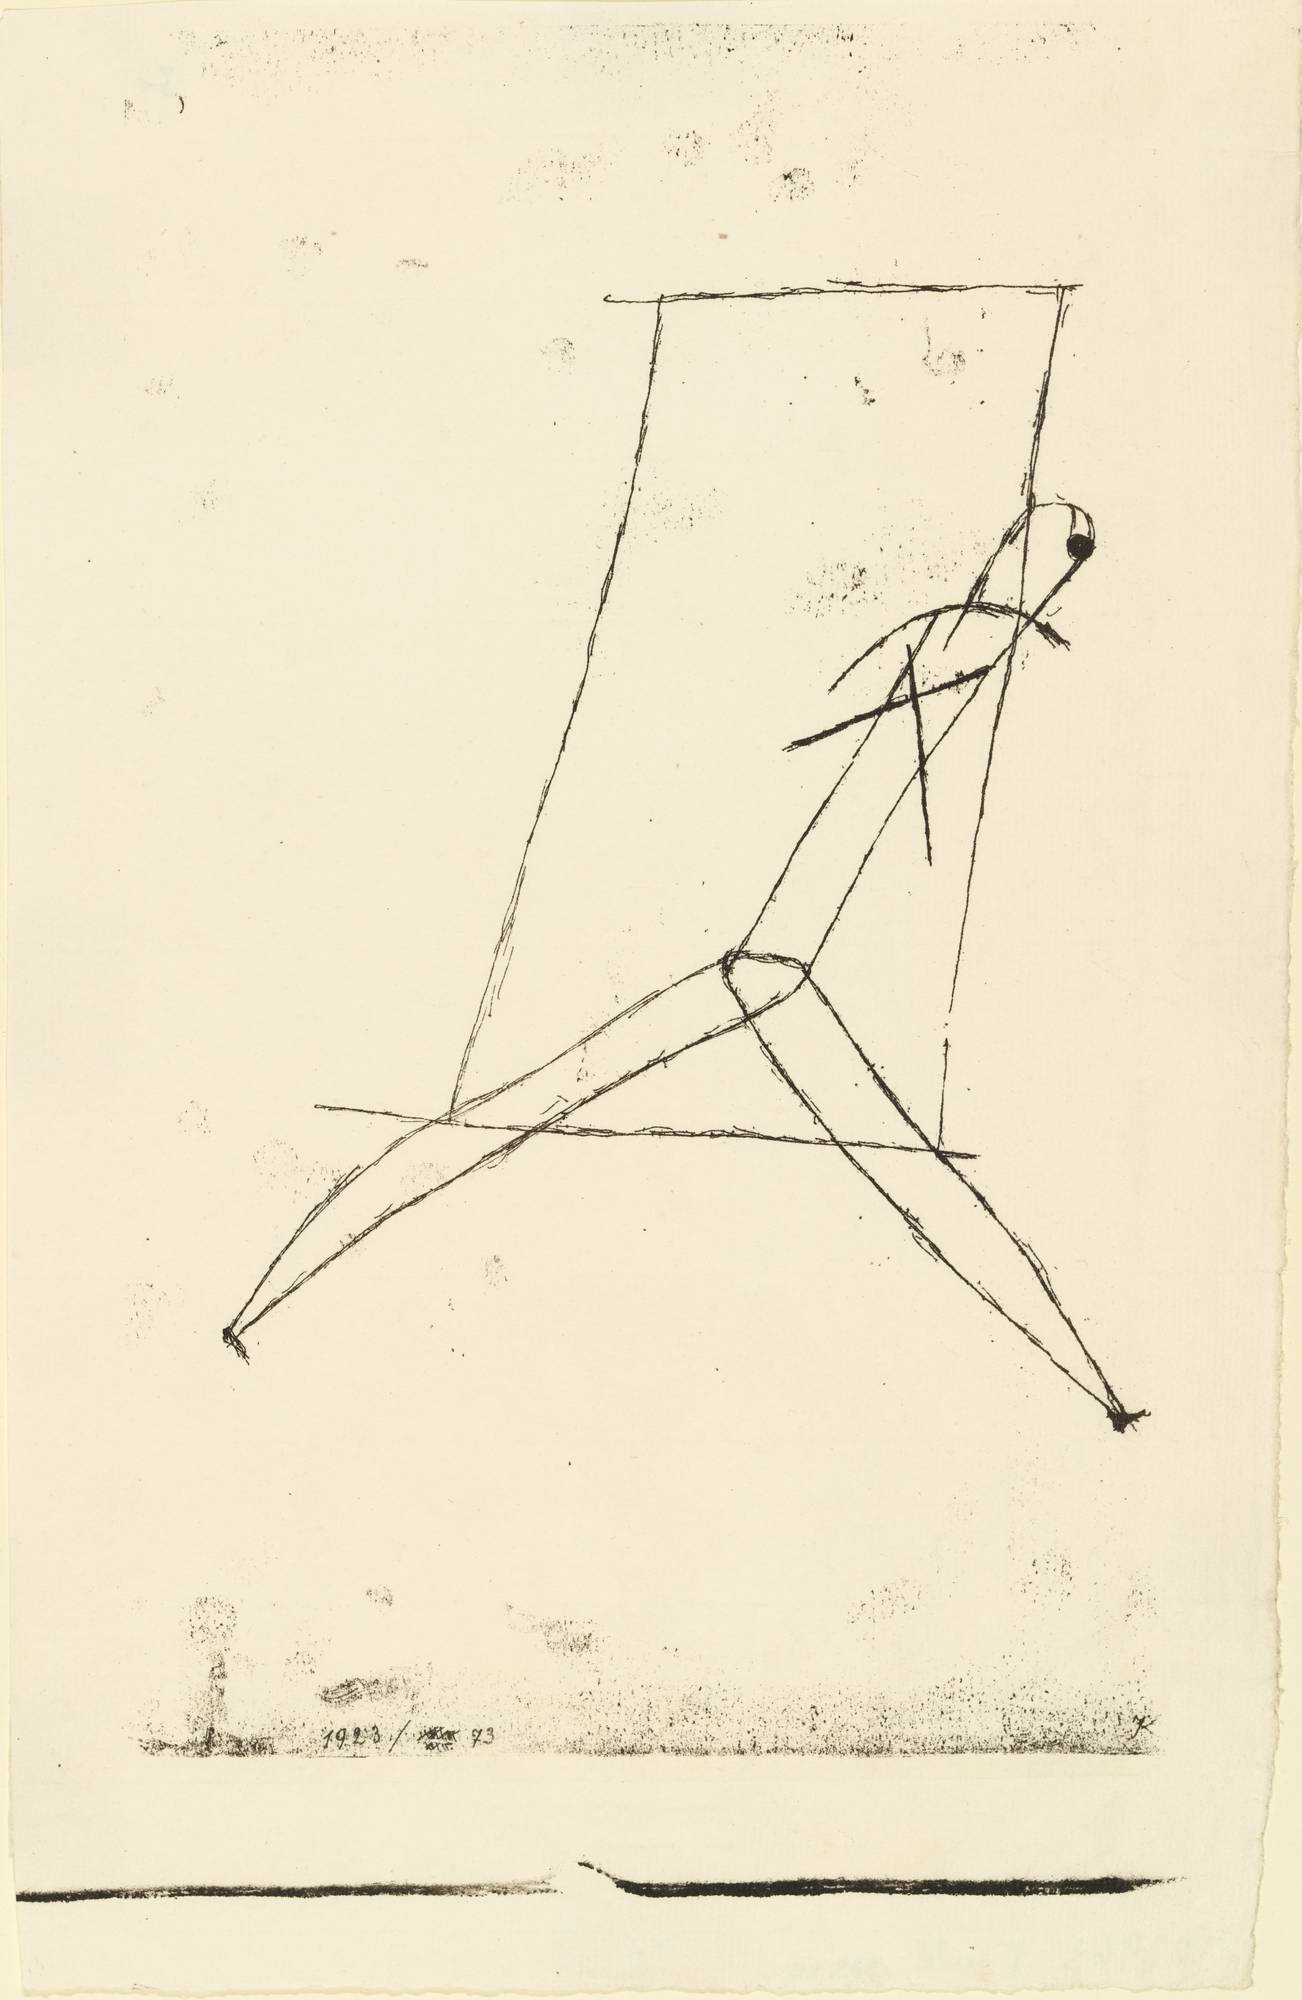 Paul Klee (German, born Switzerland. 1879–1940). Striding Out. 1923. Lithograph. composition (irreg.): 10 1/8 x 6 1/8″ (25.7 x 15.5 cm); sheet (irreg.): 11 11/16 x 7 11/16″ (29.7 x 19.5 cm). Publisher: unpublished. Printer: Staatliches Bauhaus, Weimar. Edition: approx. 6. The Museum of Modern Art, New York. Gift of Victor S. Riesenfeld. © 2021 Artists Rights Society (ARS), New York / VG Bild‑Kunst, Bonn. 339.1948.